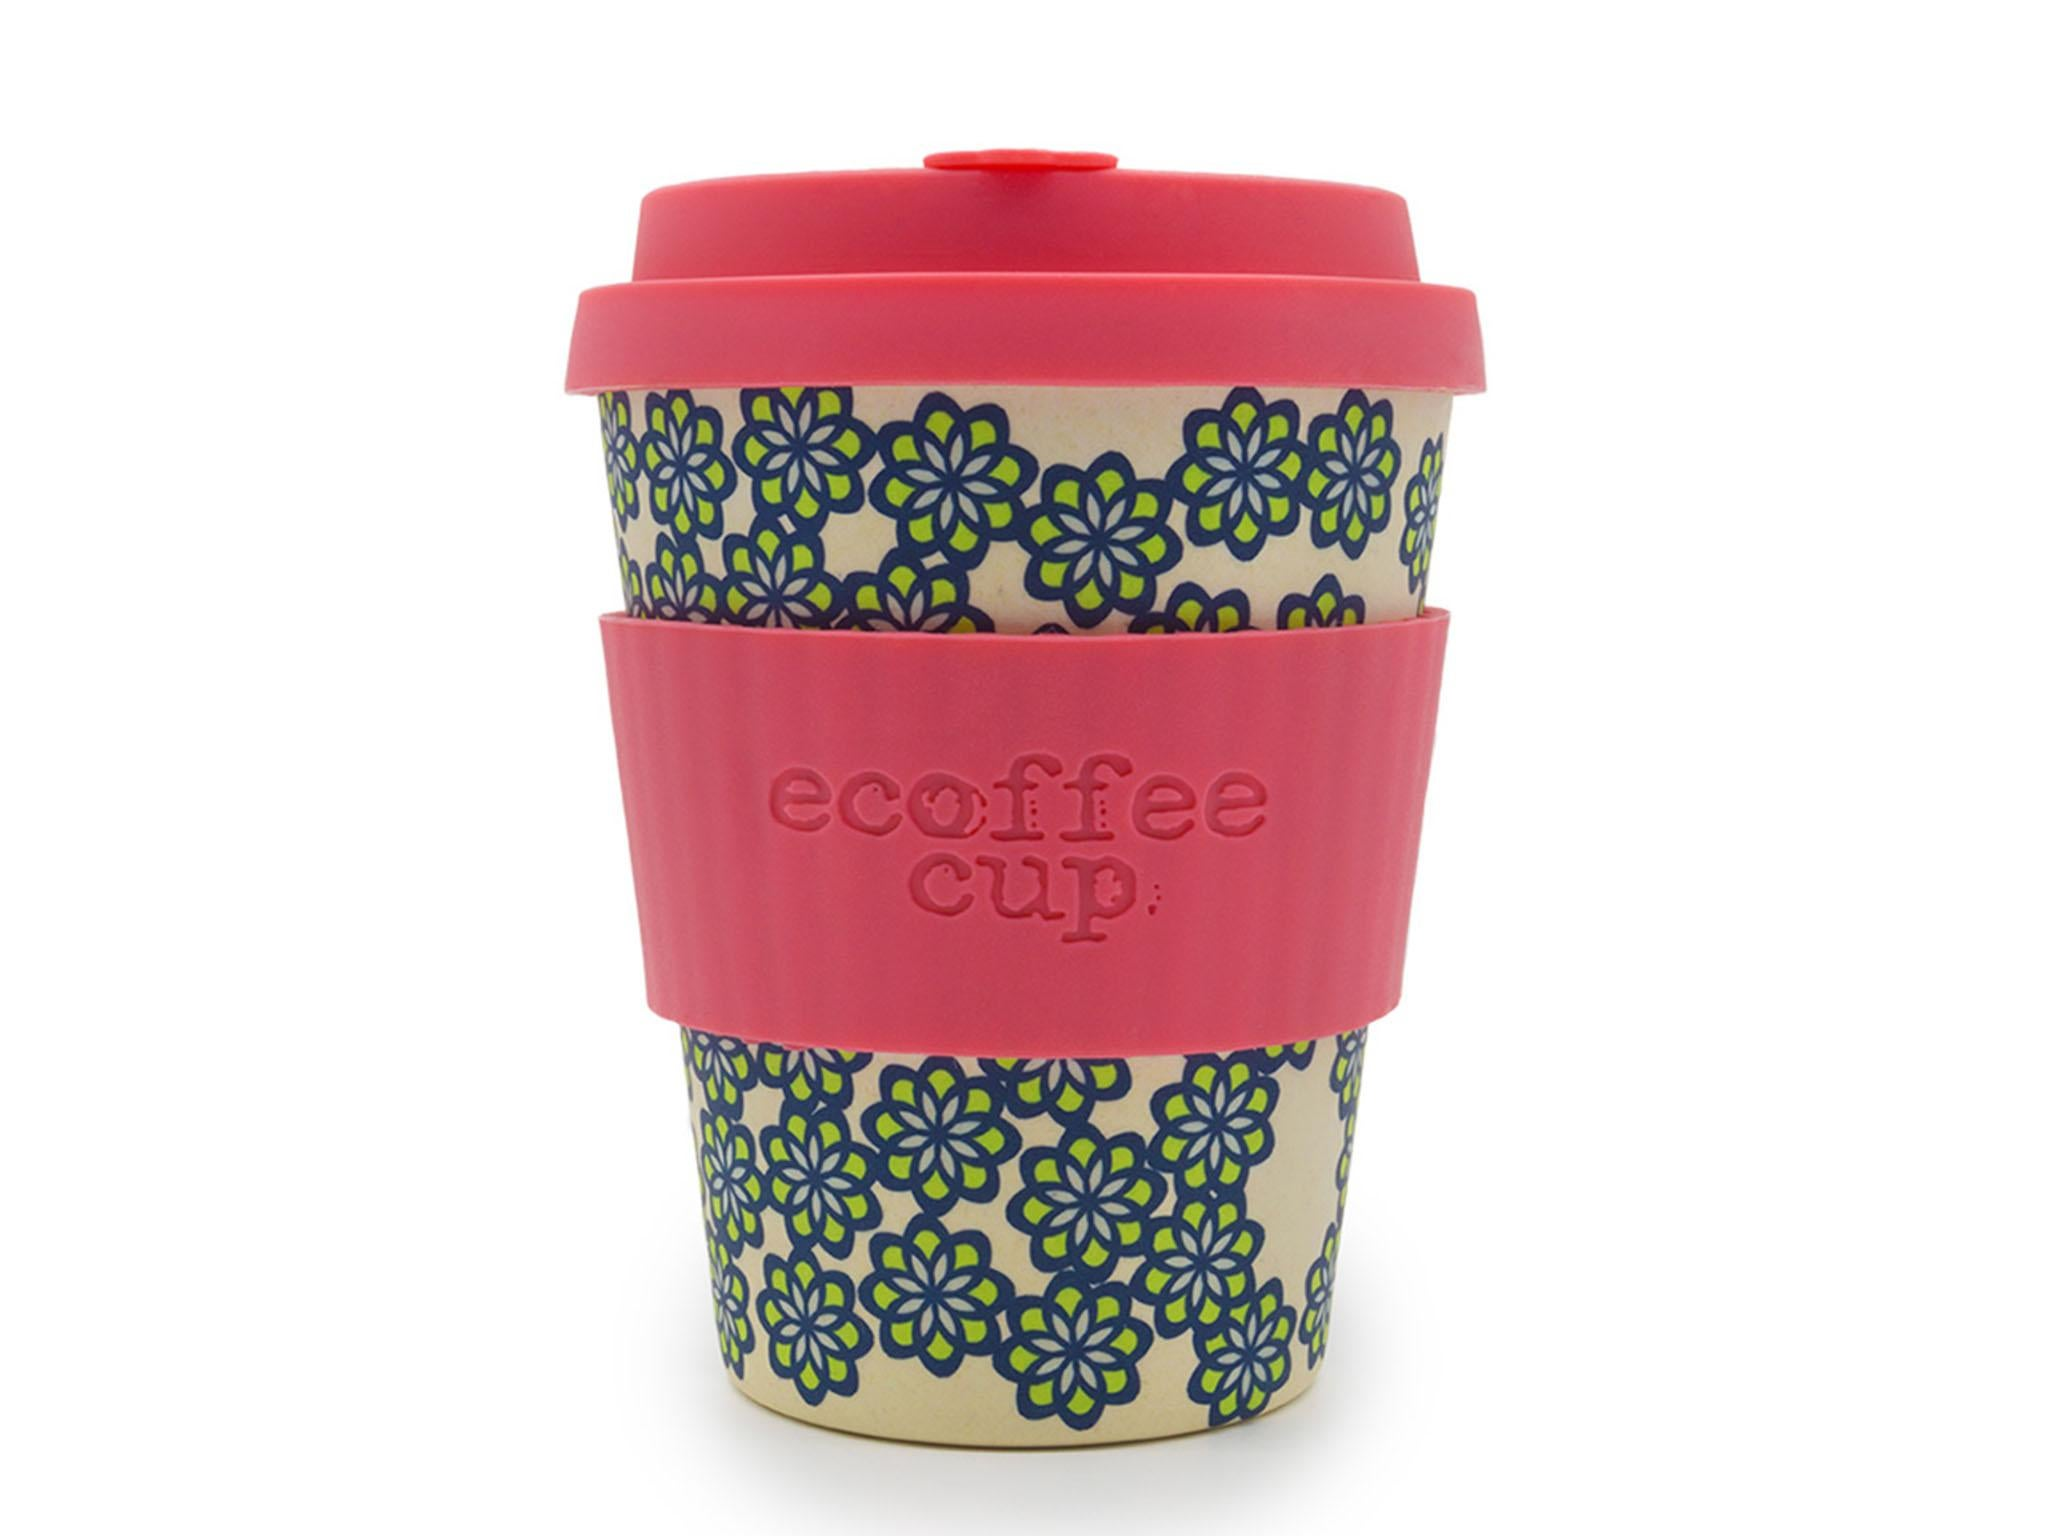 d0c18bb7320 Best reusable coffee cup guide: Top products for temperature control and  leakproofness